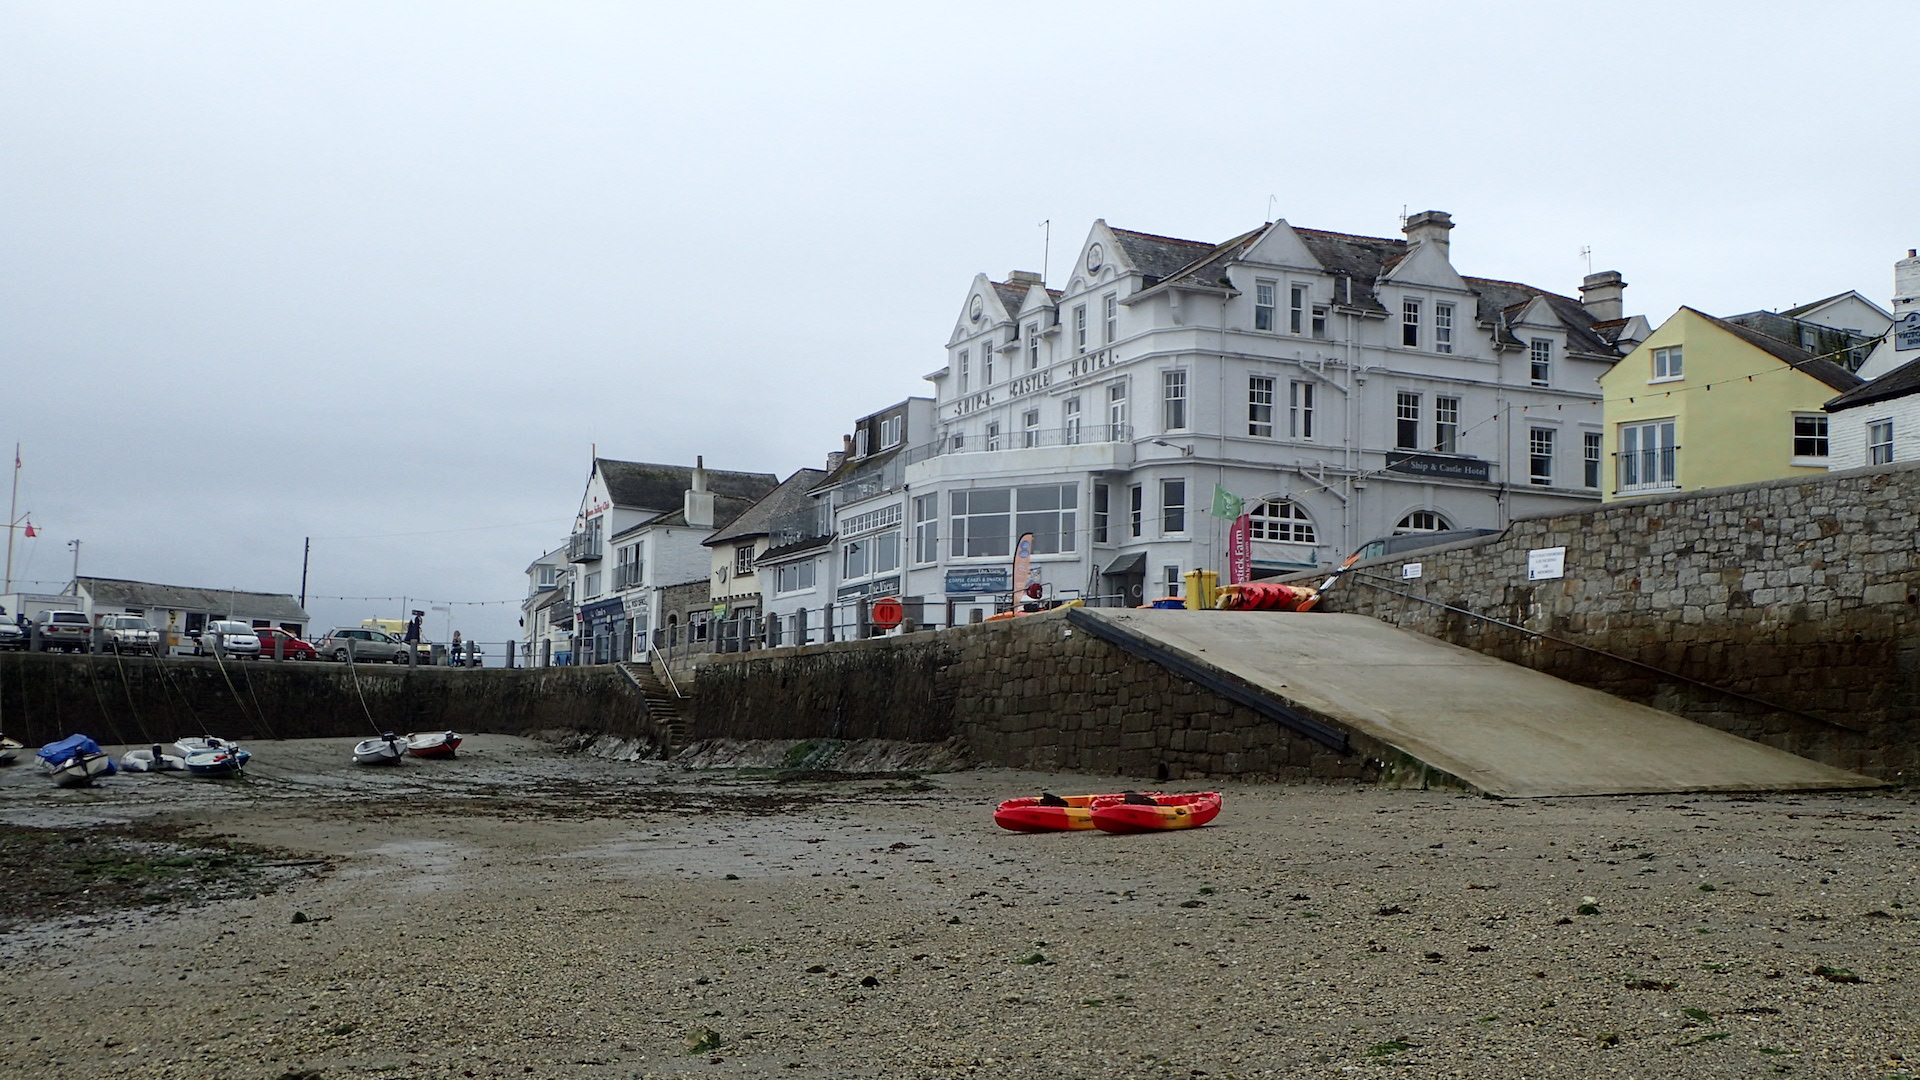 St Mawes harbour - low tide